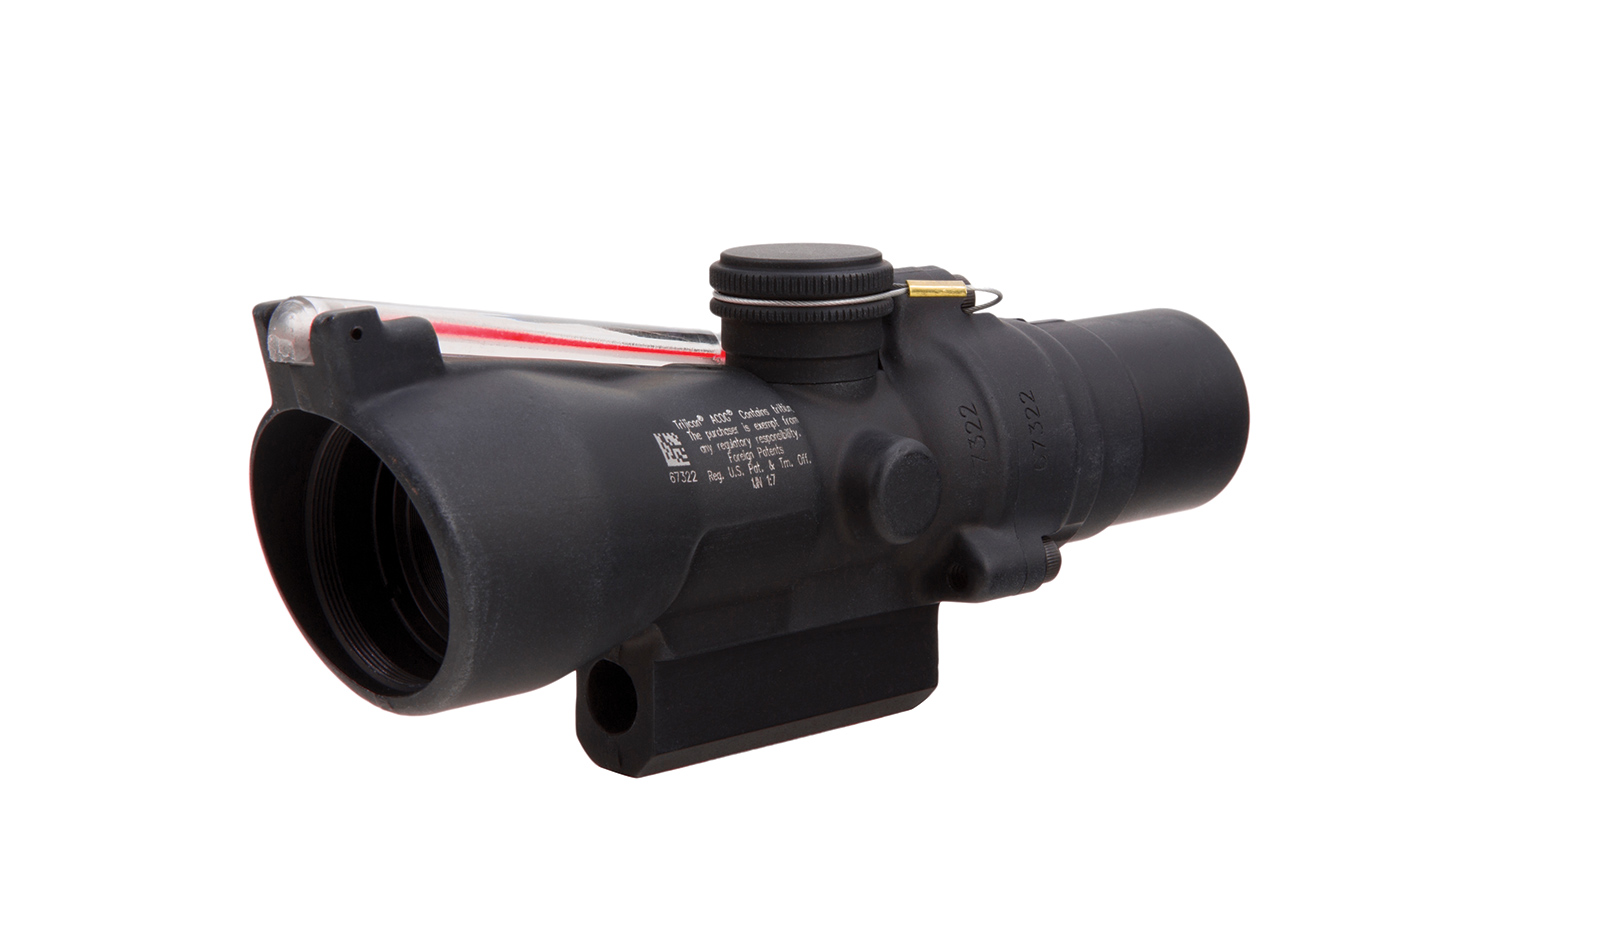 Trijicon ACOG® 2x20 Riflescope